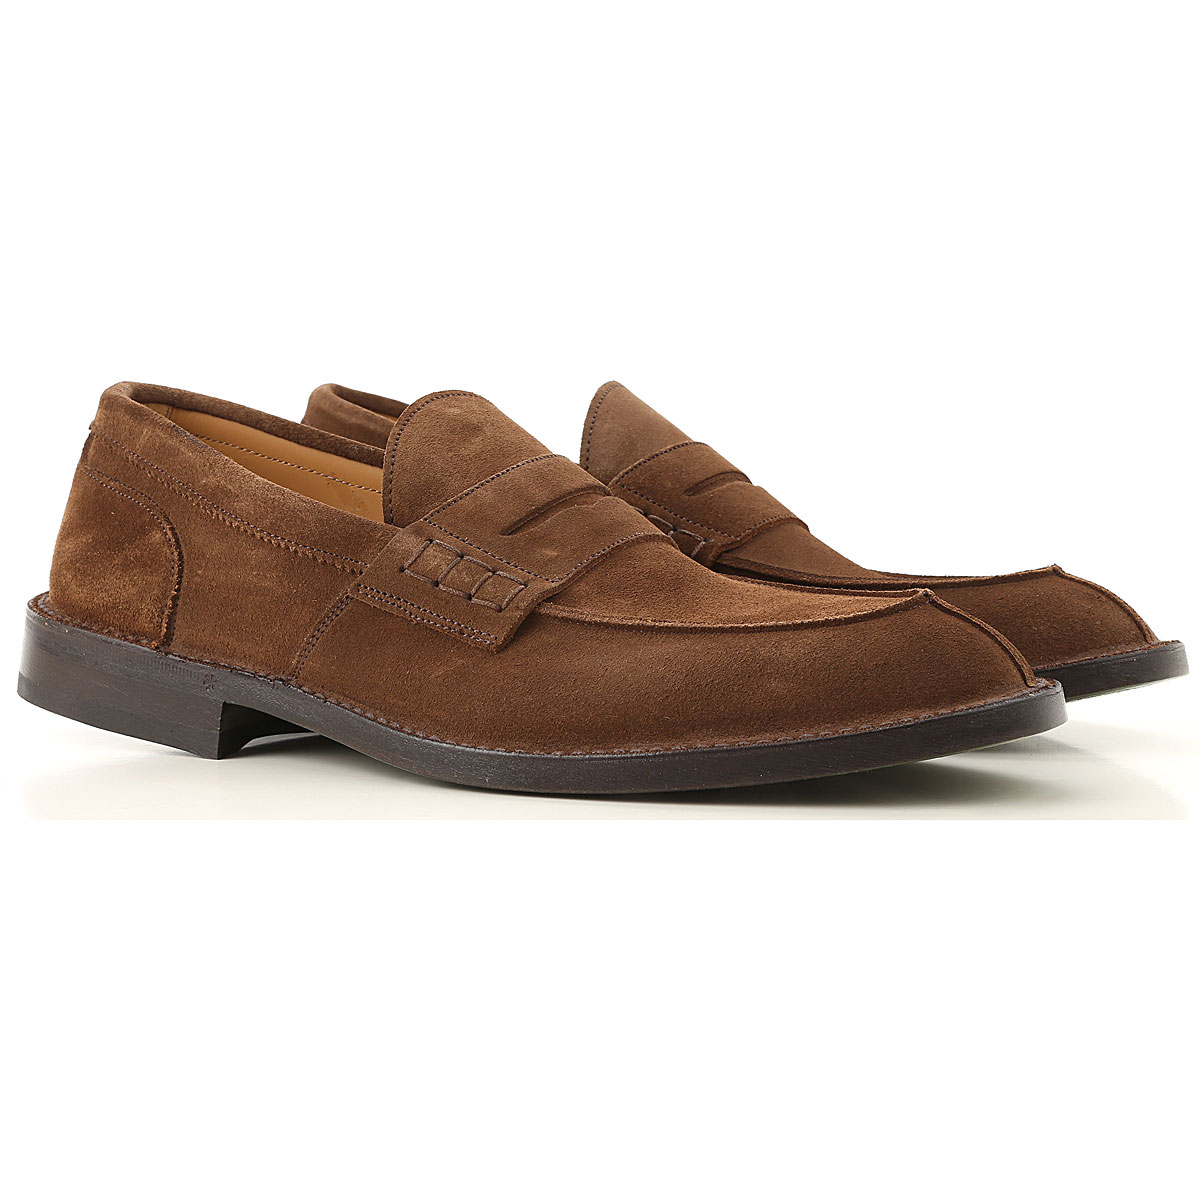 Green George Loafers for Men On Sale in Outlet, Mole, Suede leather, 2019, 10 11 9